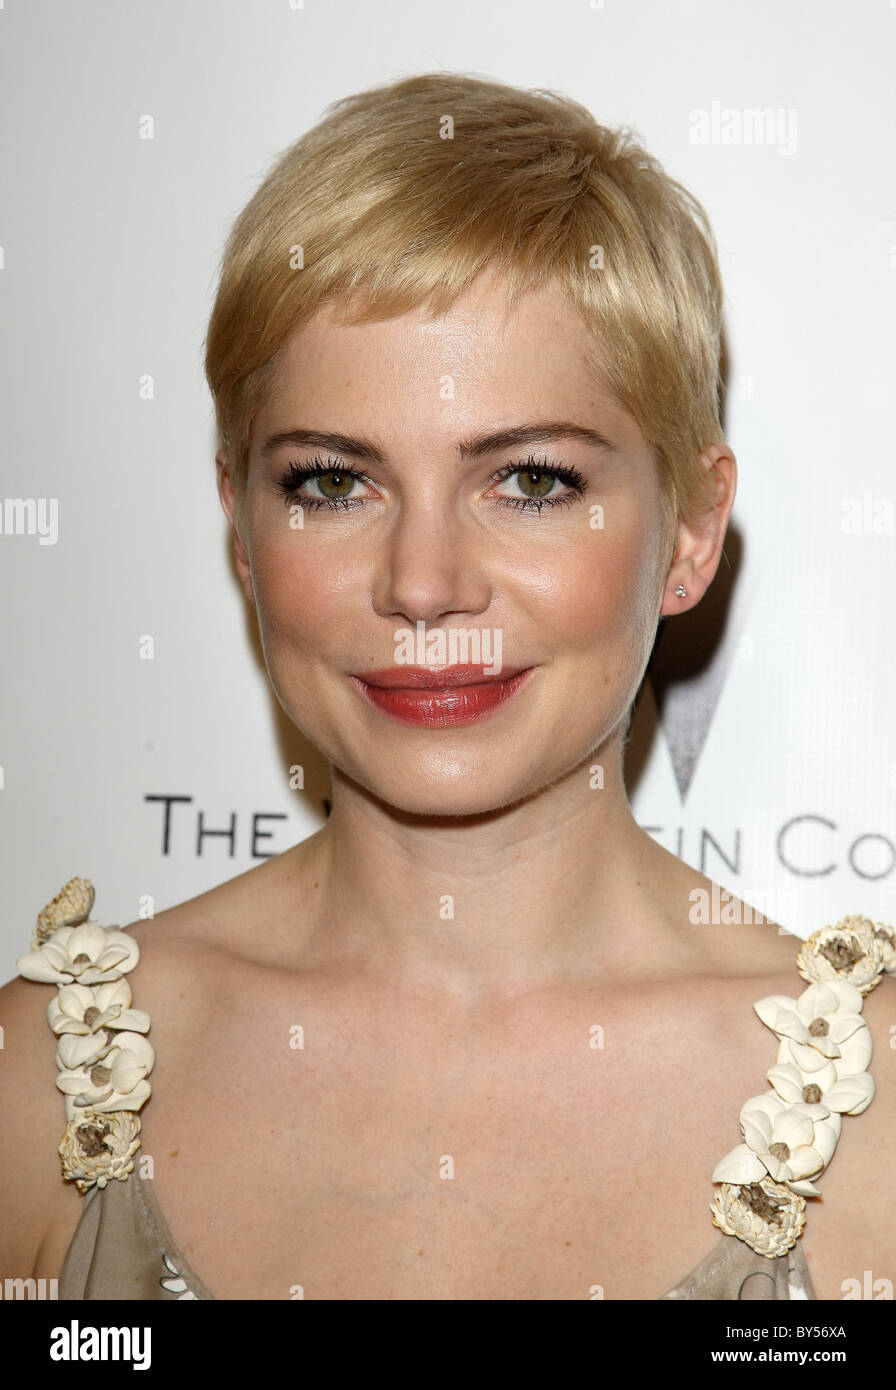 MICHELLE WILLIAMS RELATIVITY MEDIA AND THE WEINSTEIN COMPANY 2011 GOLDEN GLOBES AFTER PARTY BEVERLY HILLS LOS ANGELES - Stock Image